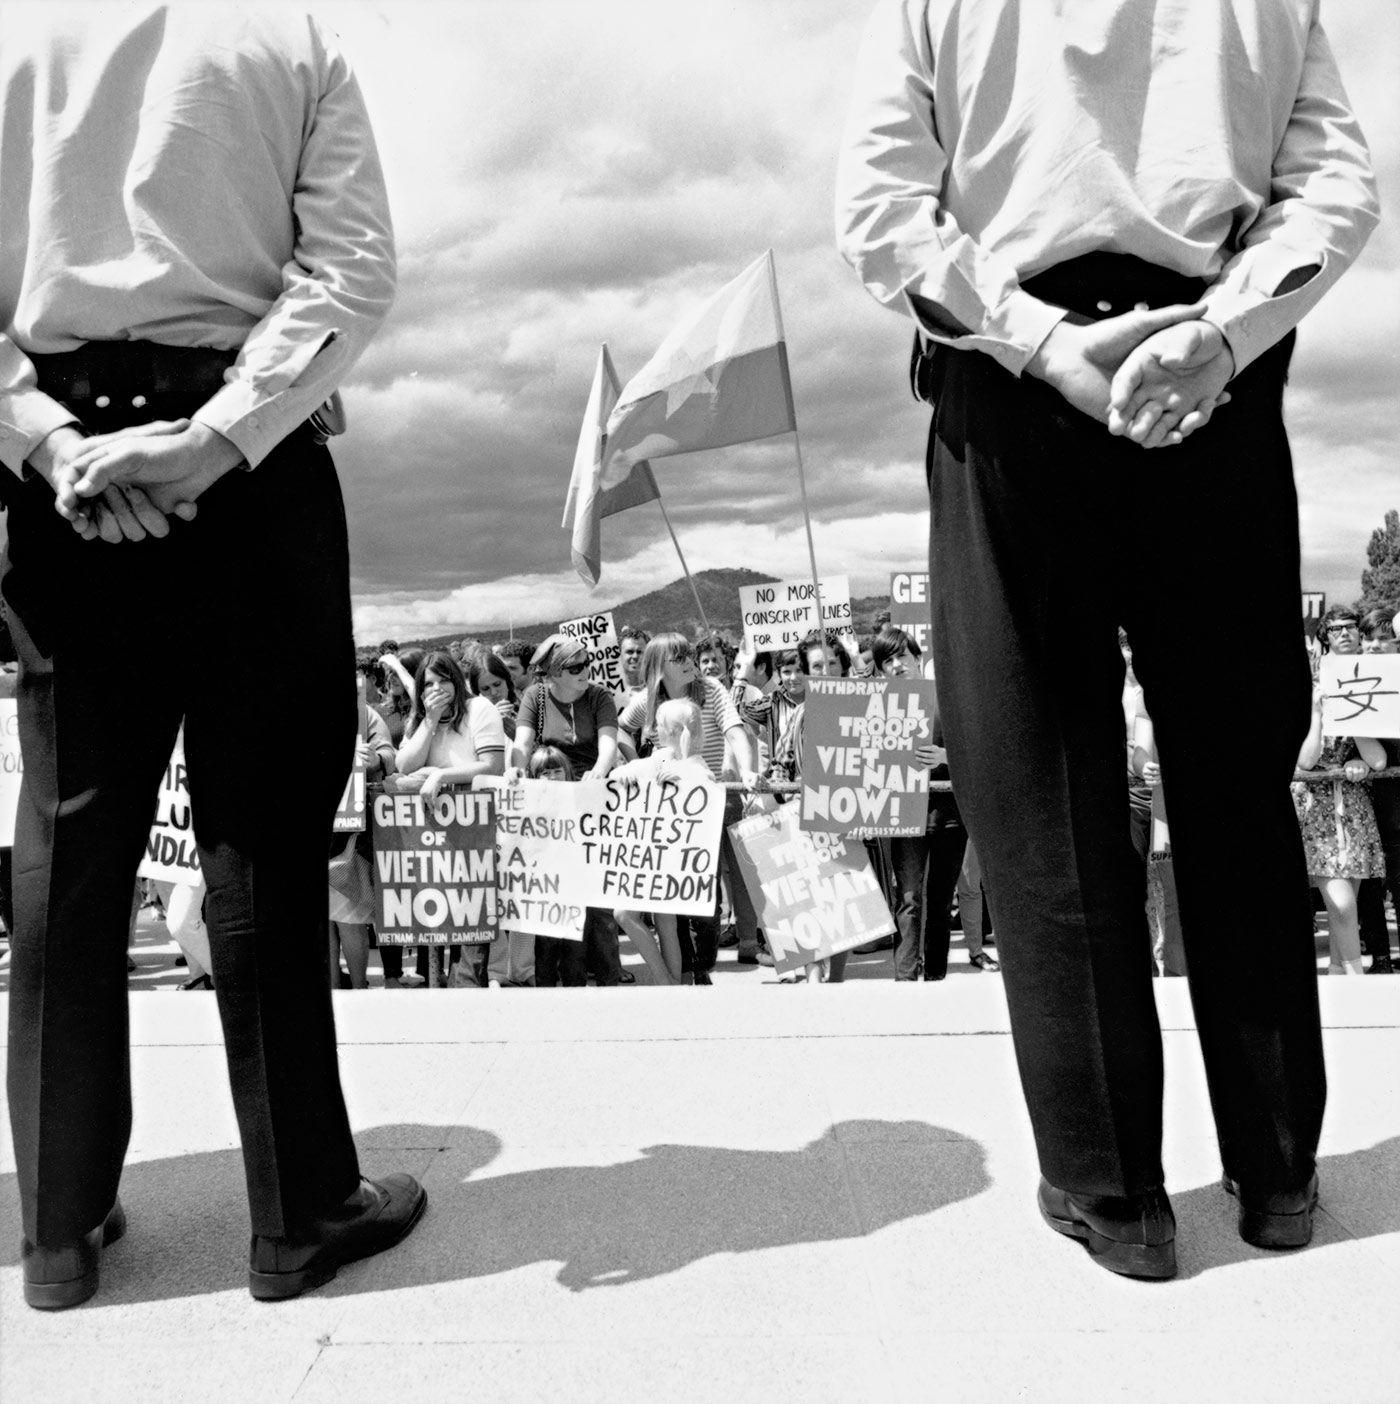 A protest at Parliament House, Canberra, 14 January 1970, National Archives of Australia A1200, L85635.